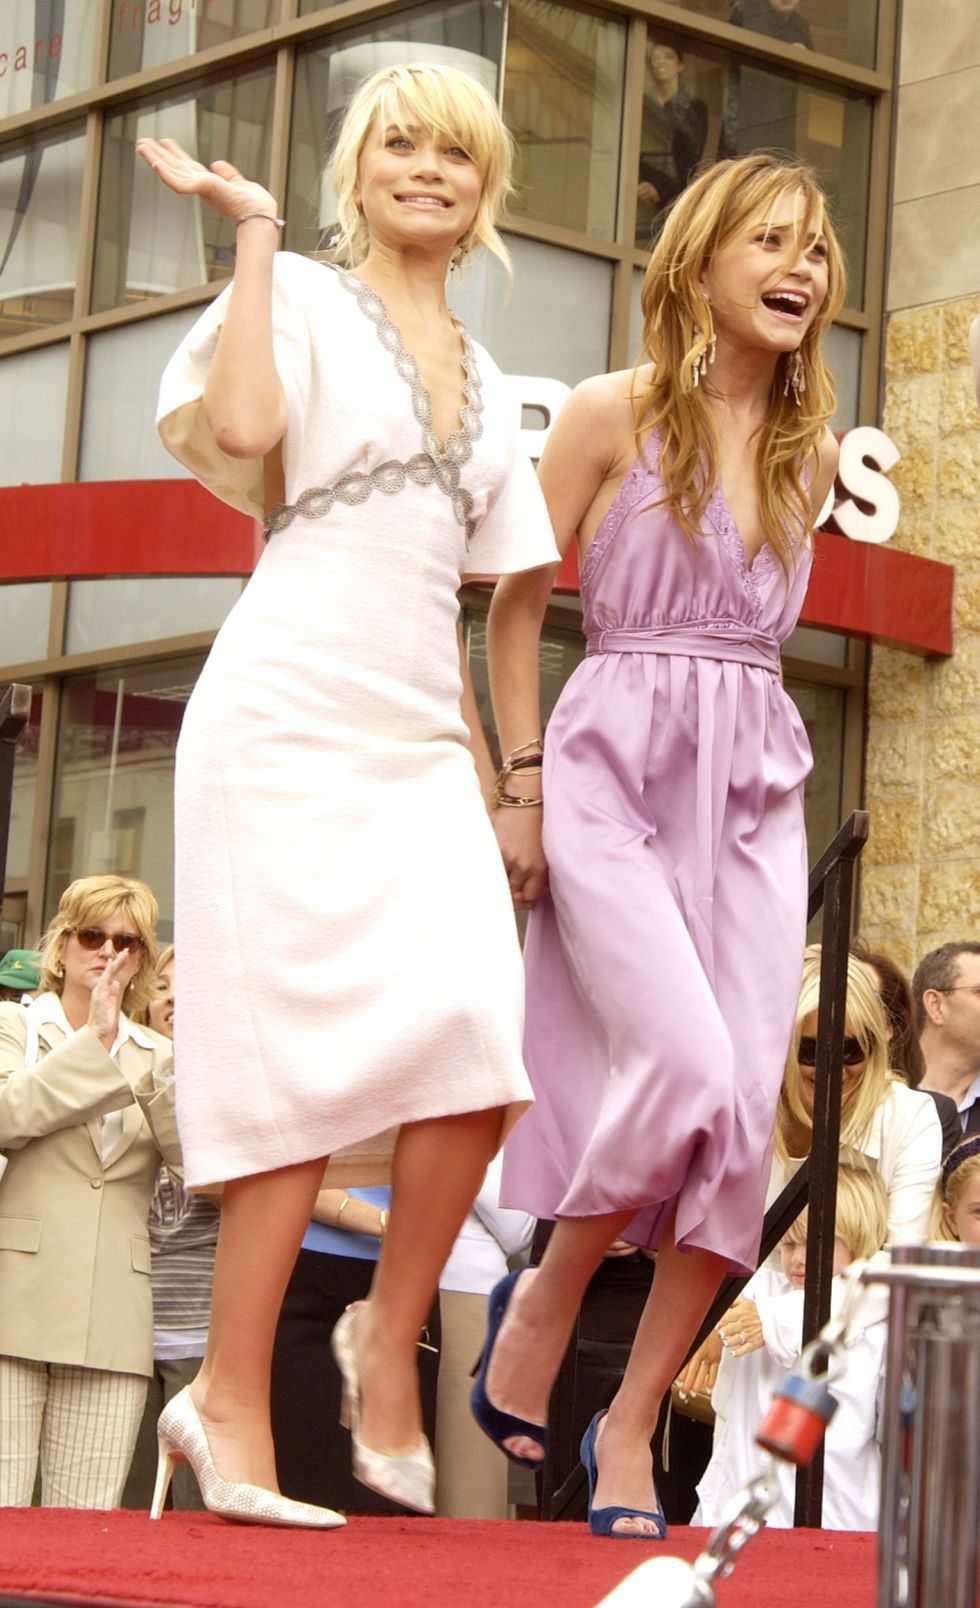 April 29, 2004 For their Walk of Fame ceremony, the girls both wore midi dresses: Ashley in white, Mary-Kate in lavender.